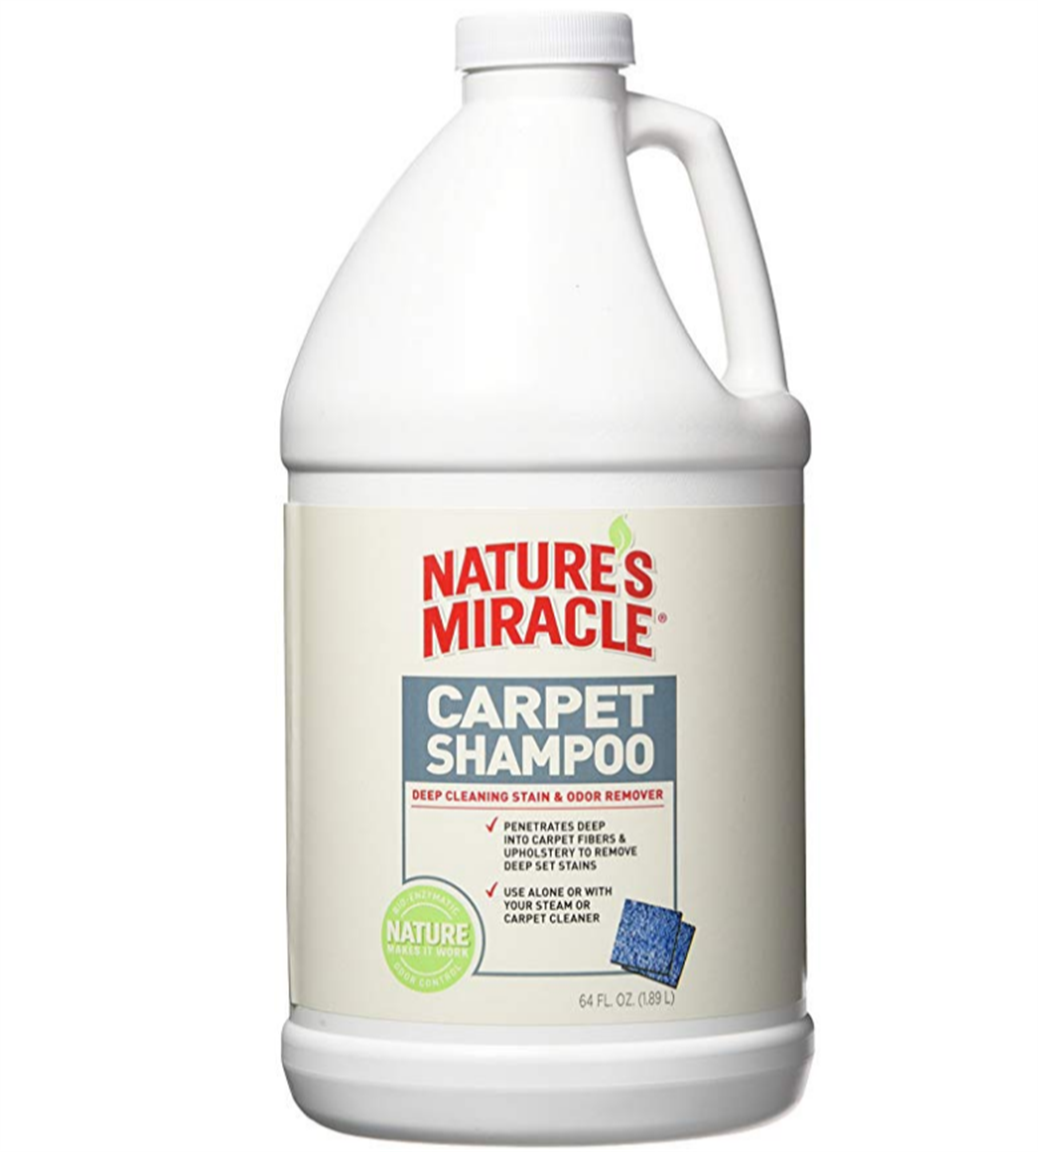 Amazon – 64oz. Nature's Miracle Deep Cleaning Pet Stains and Odor Carpet Shampoo Only $4.98 + Free Shipping!